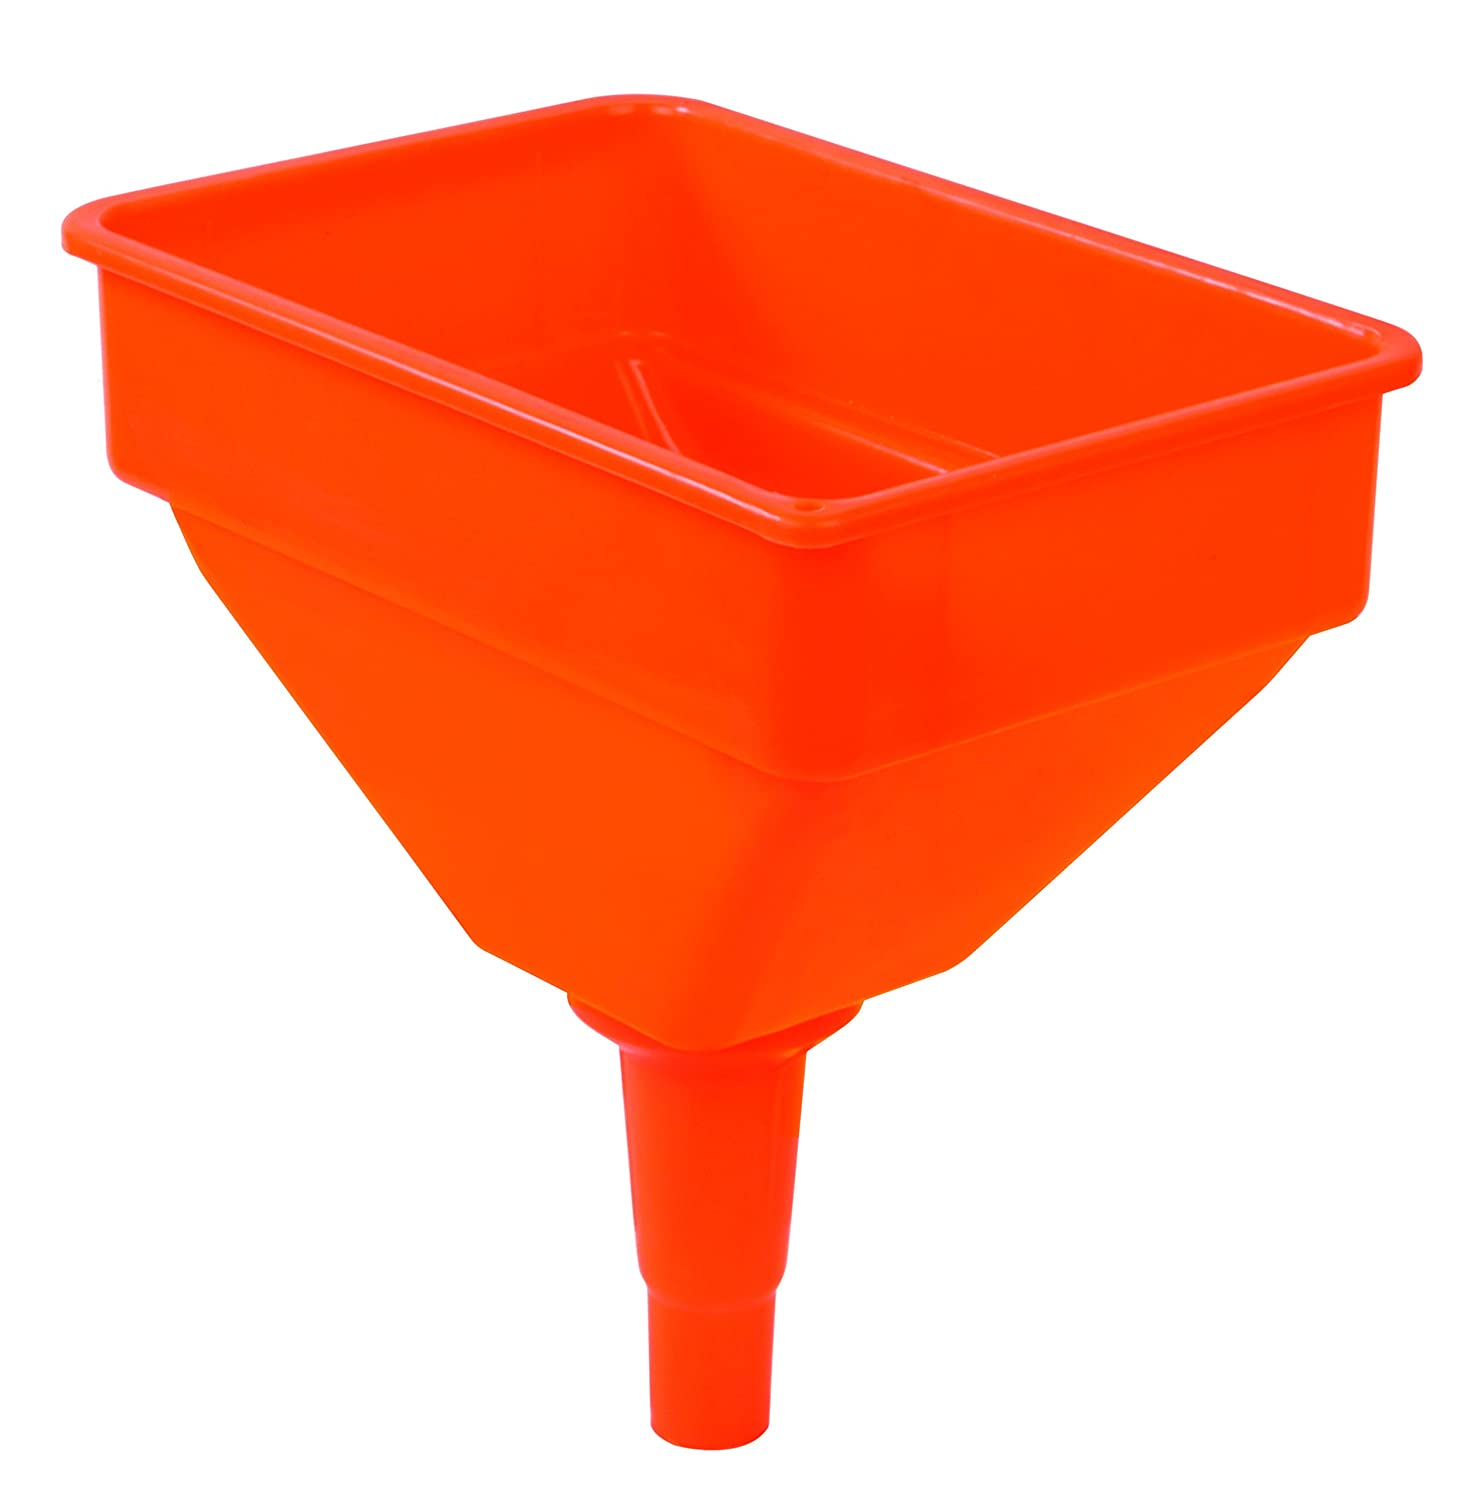 Extra Wide Mouth for Easy Pouring Filter Screen 41931 GROZ 1.2 Gallon Capacity High Flow Fuel /& Oil Funnel Heavy Duty